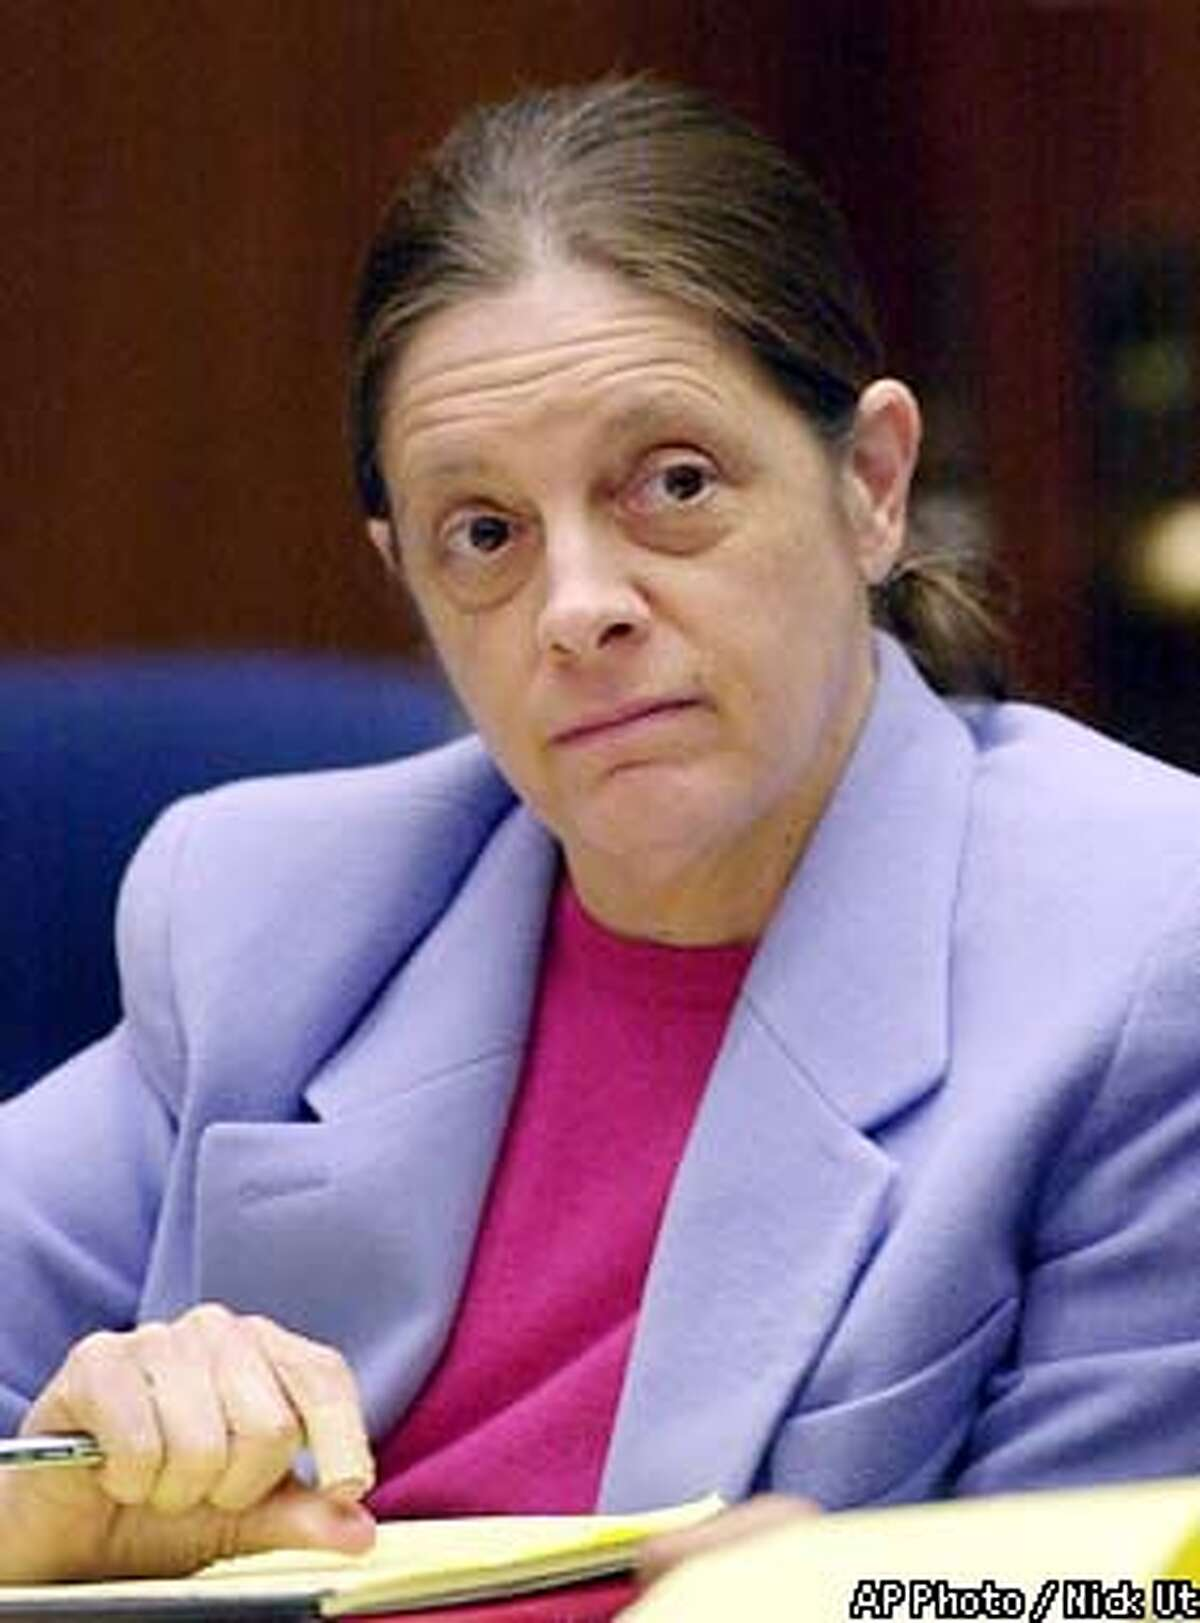 Chief defendant Marjorie Knoller listens to closing arguments in the San Francisco dog mauling trial Monday, March 18, 2002, at the Los Angeles County Courthouse in Los Angeles. Knoller, who was present when two dogs she and her husband kept attacked neighbor Diane Whipple in a hallway of their San Francisco apartment building on Jan. 26, 2001, is charged with second-degree murder. Knoller, 46, and her husband Robert Noel, 60, are both charged with involuntary manslaughter and keeping a mischievous dogthat killed a person. (AP Photo/Nick Ut, Pool)